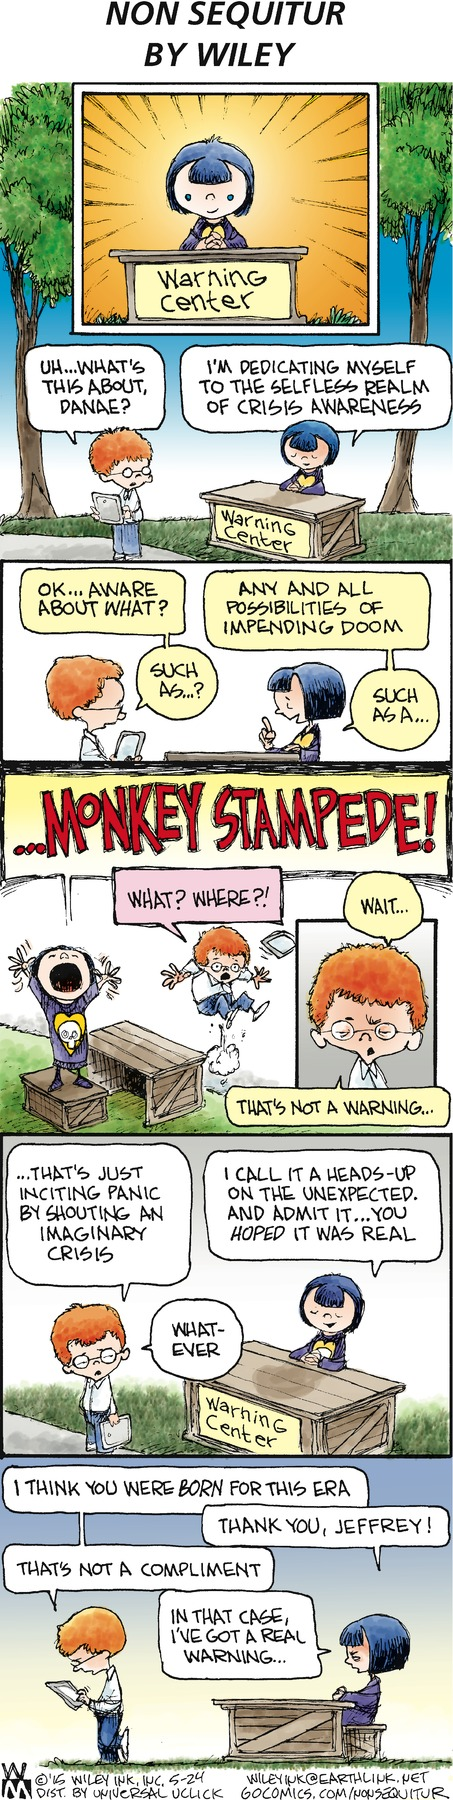 Non Sequitur Comic Strip for May 24, 2015